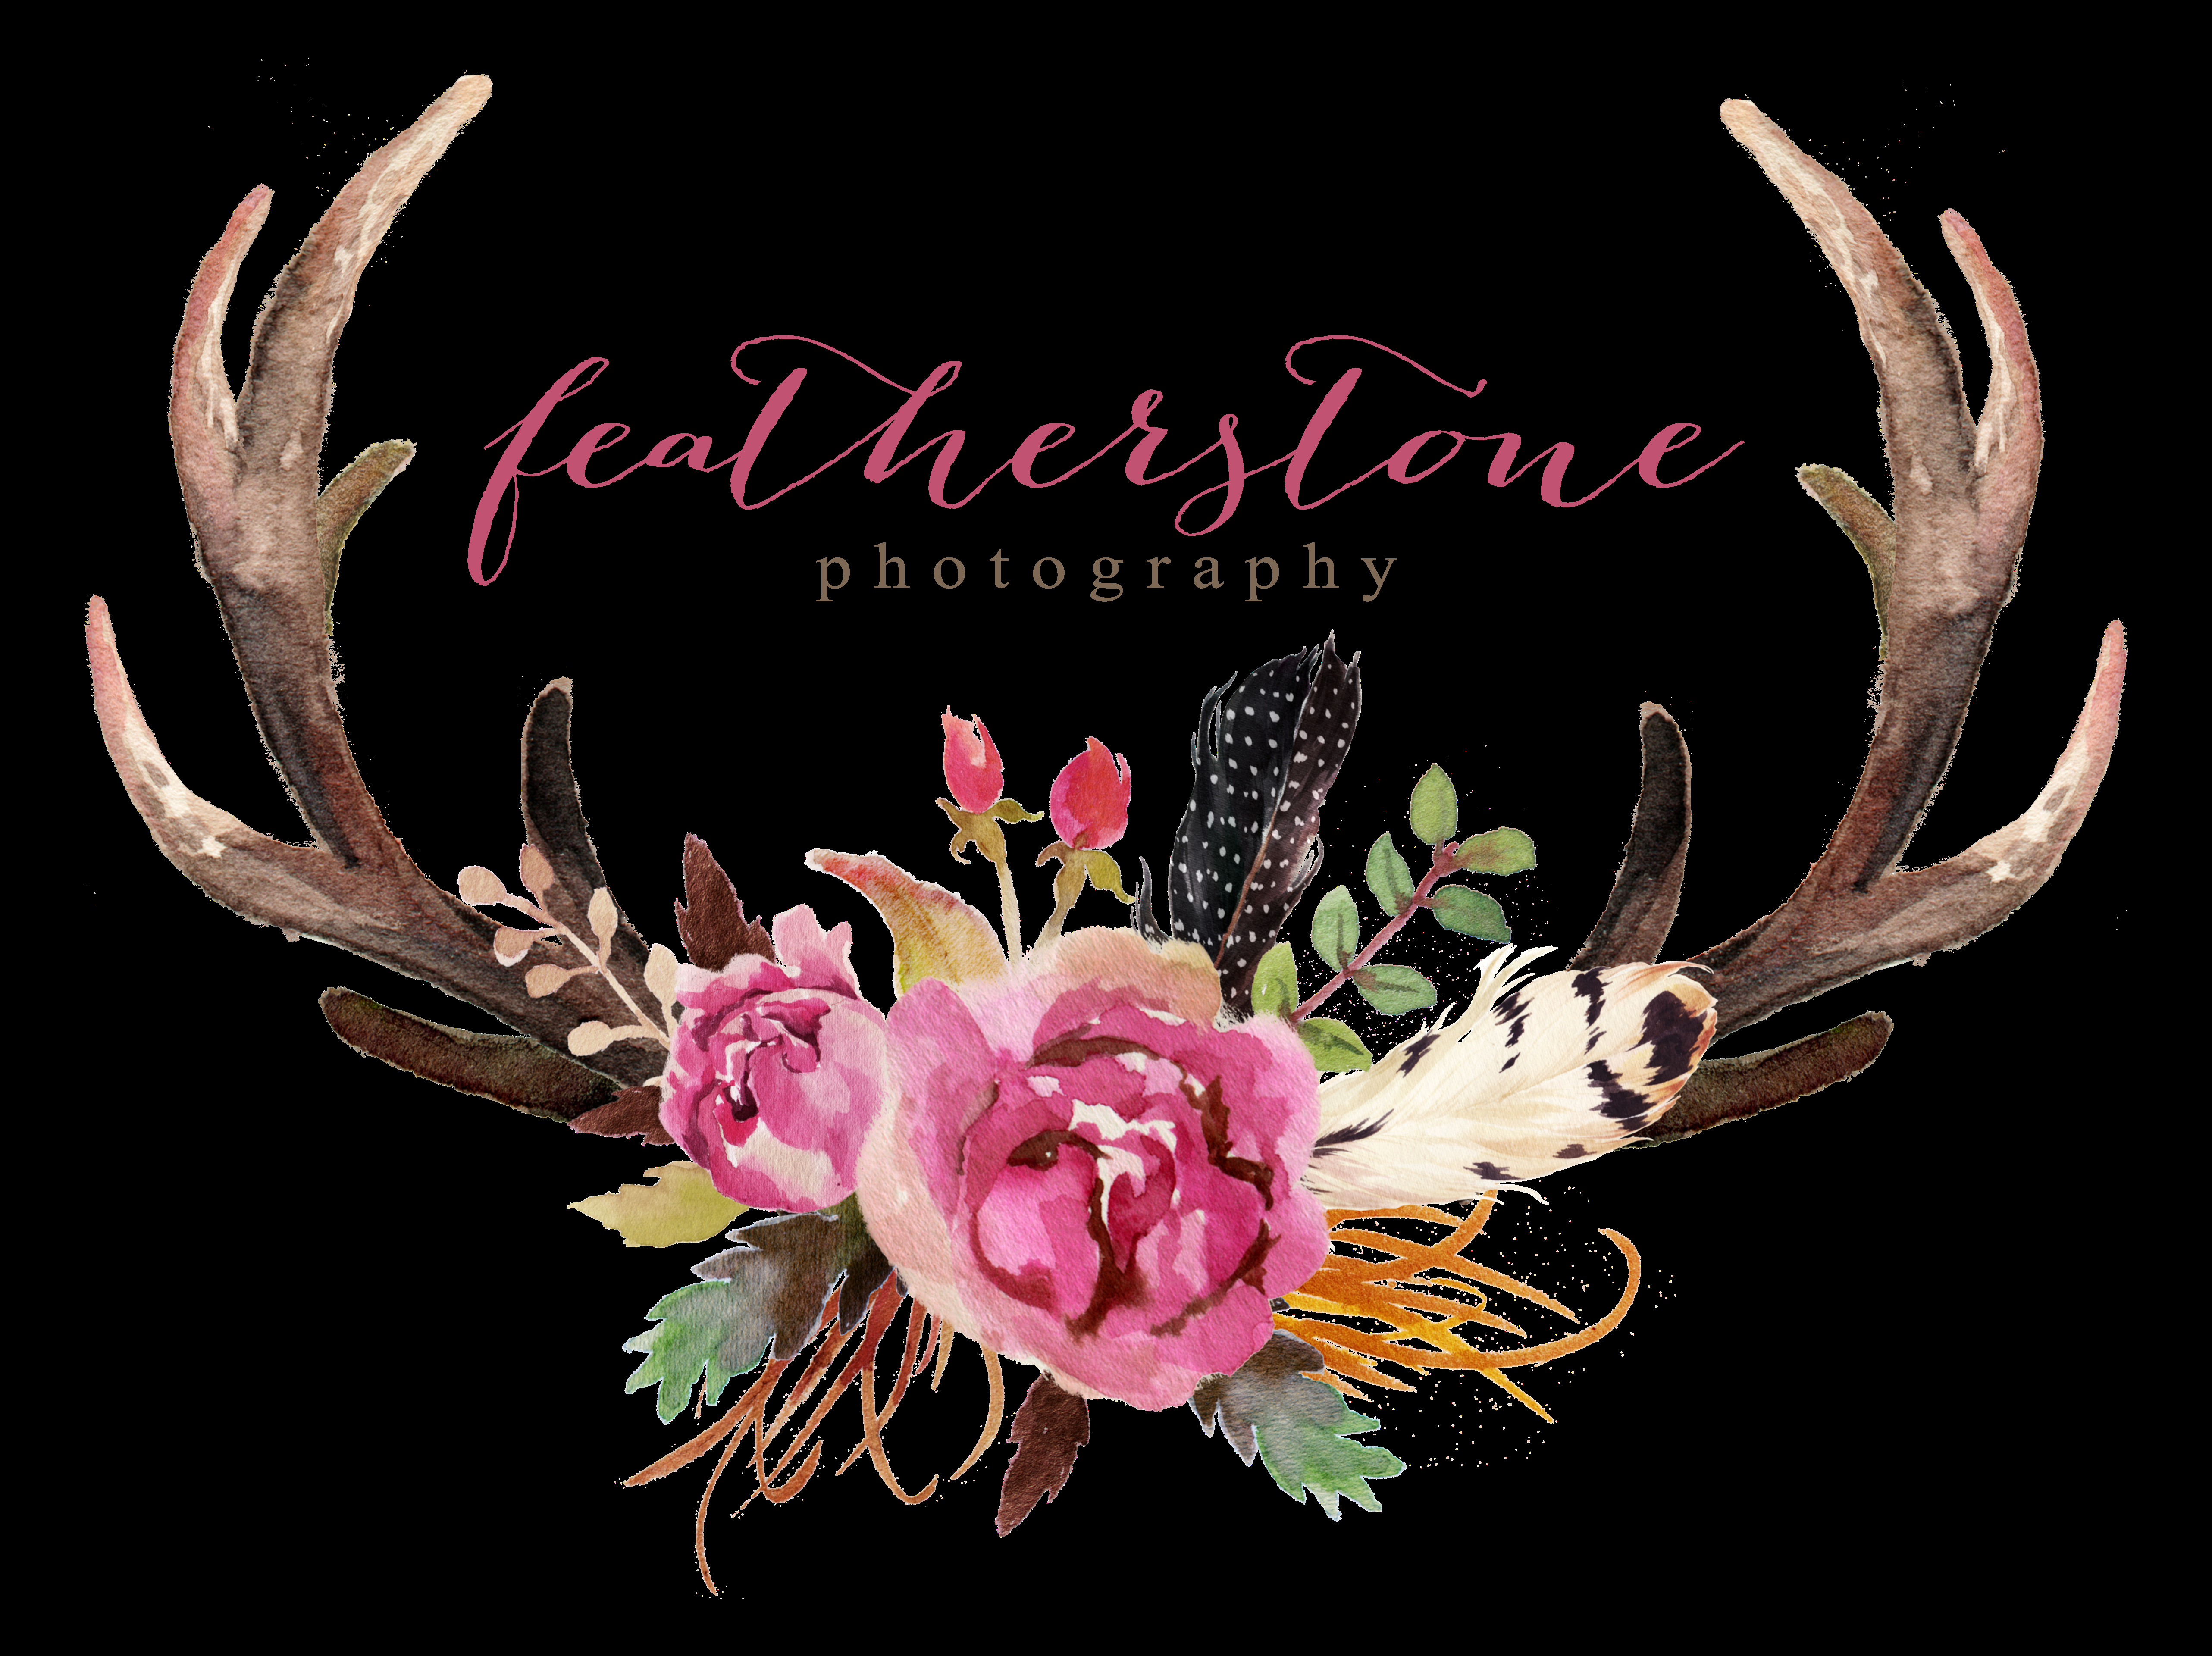 Featherstone Photography